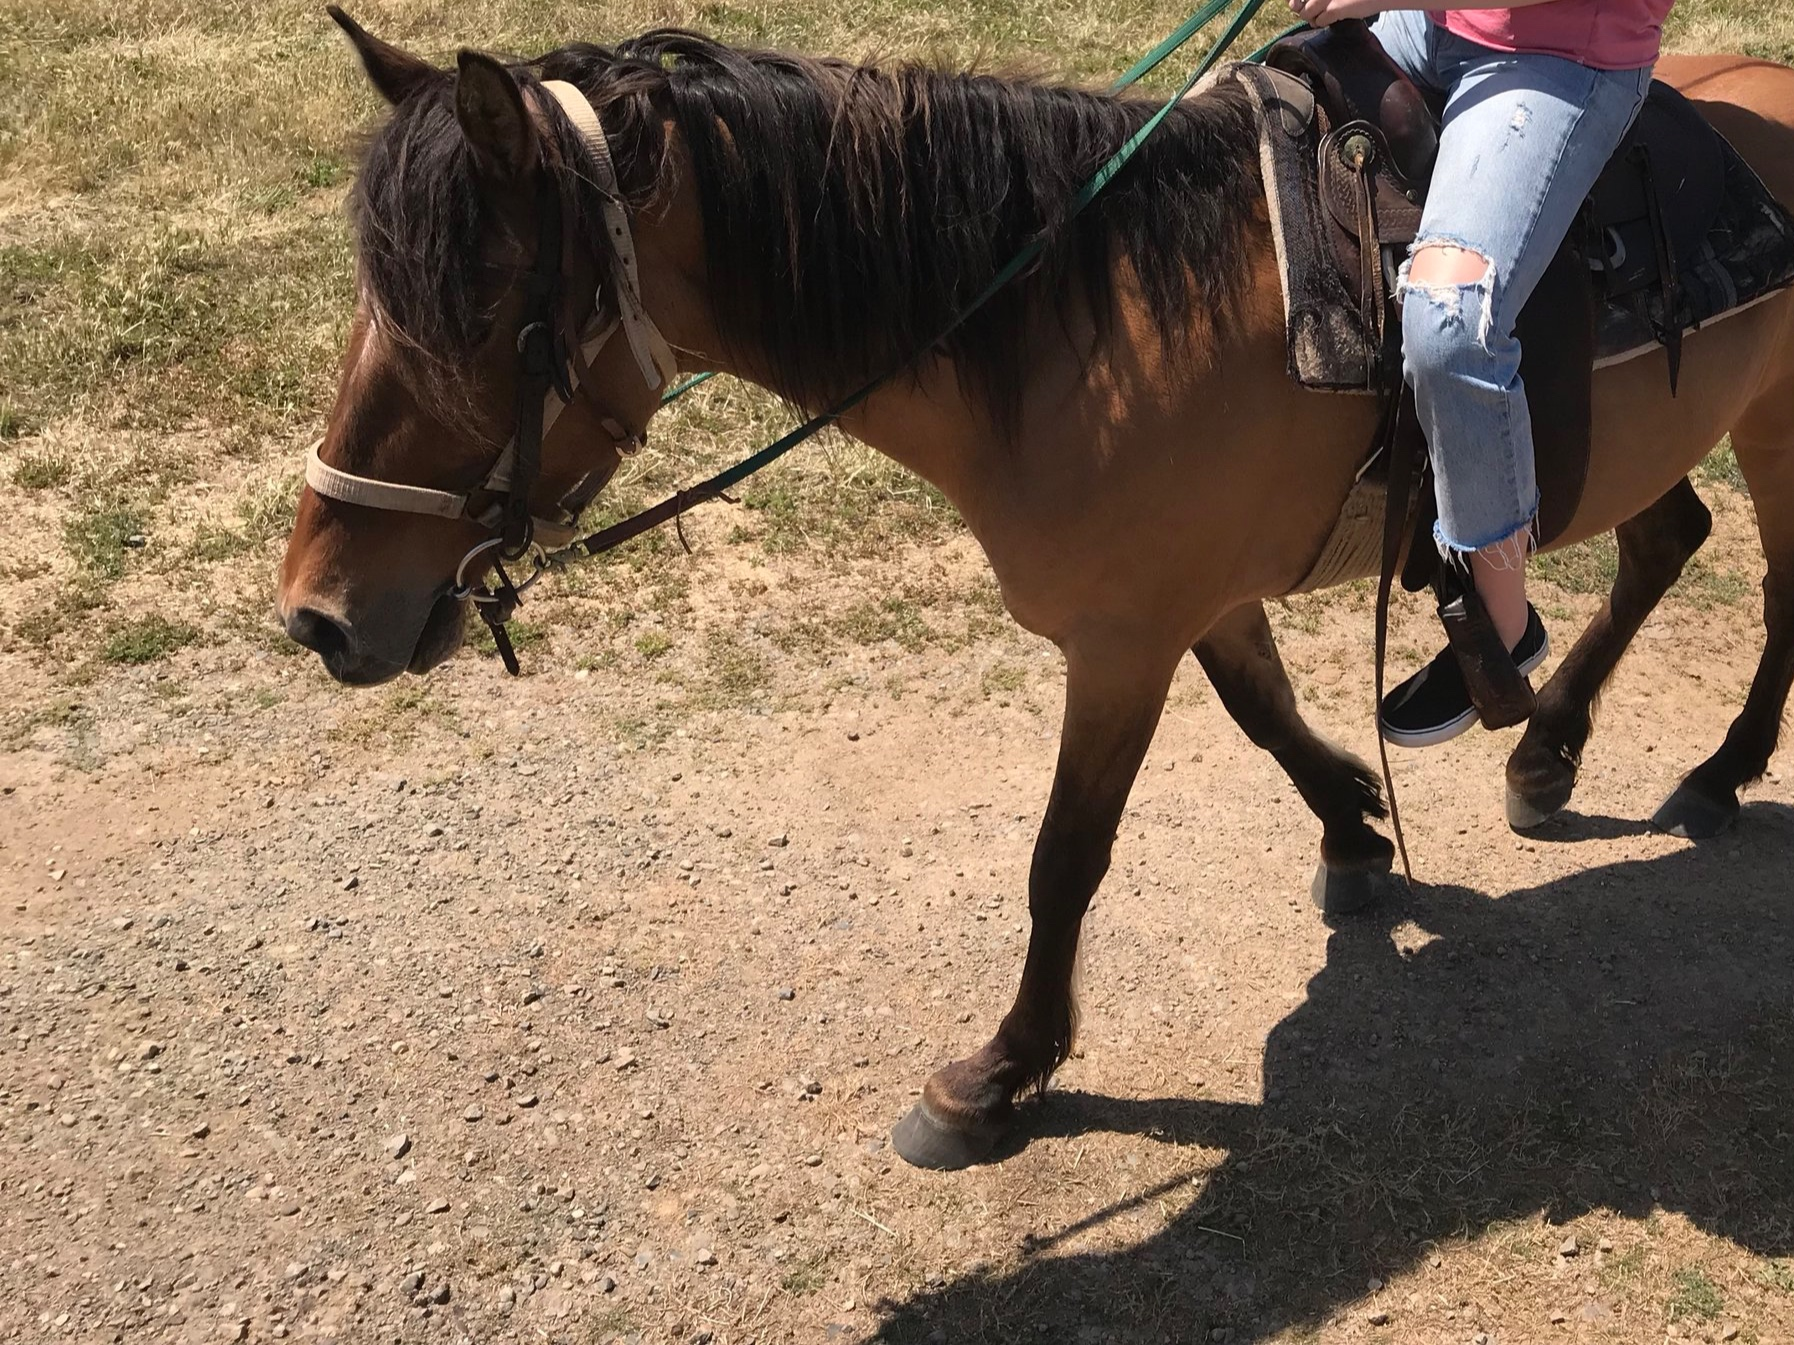 ROSABELLE - Rosabelle, also known as Rose: Shy, soft and kind to the core, Rose can put any rider in a calm, relaxed state of mind. She is a Kiger Mustang, a breed known for outstanding beauty and grace. Rose is very sweet and loves love.